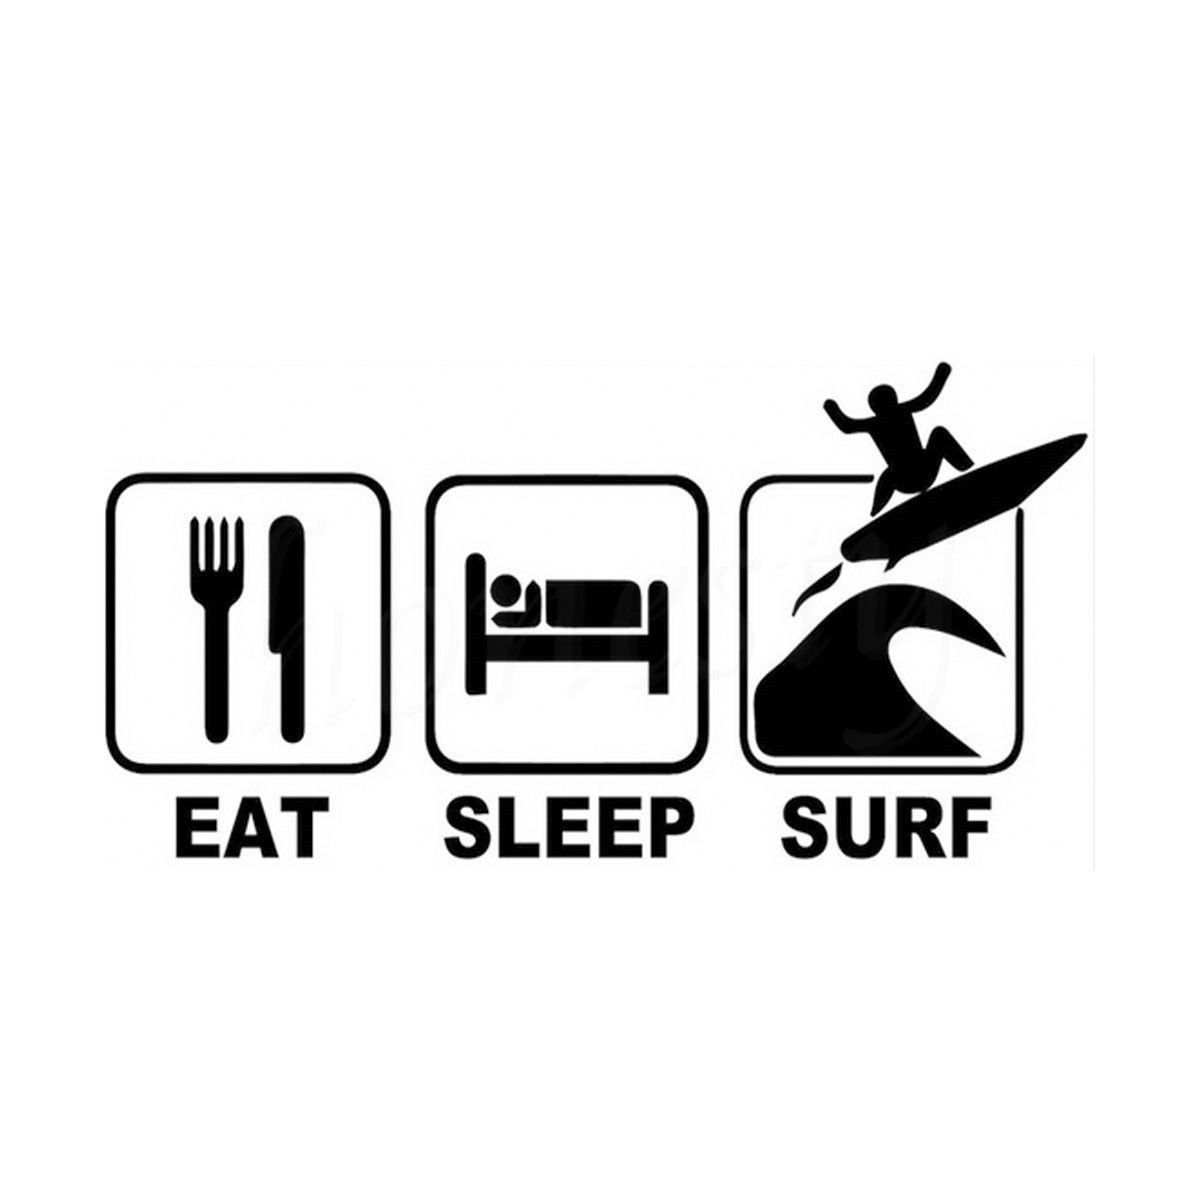 Funny fashion eat sleep surf car window truck wall home glass door jdm stickers vinyl decal decor gift black 18 0cmx8 8cm in car stickers from automobiles